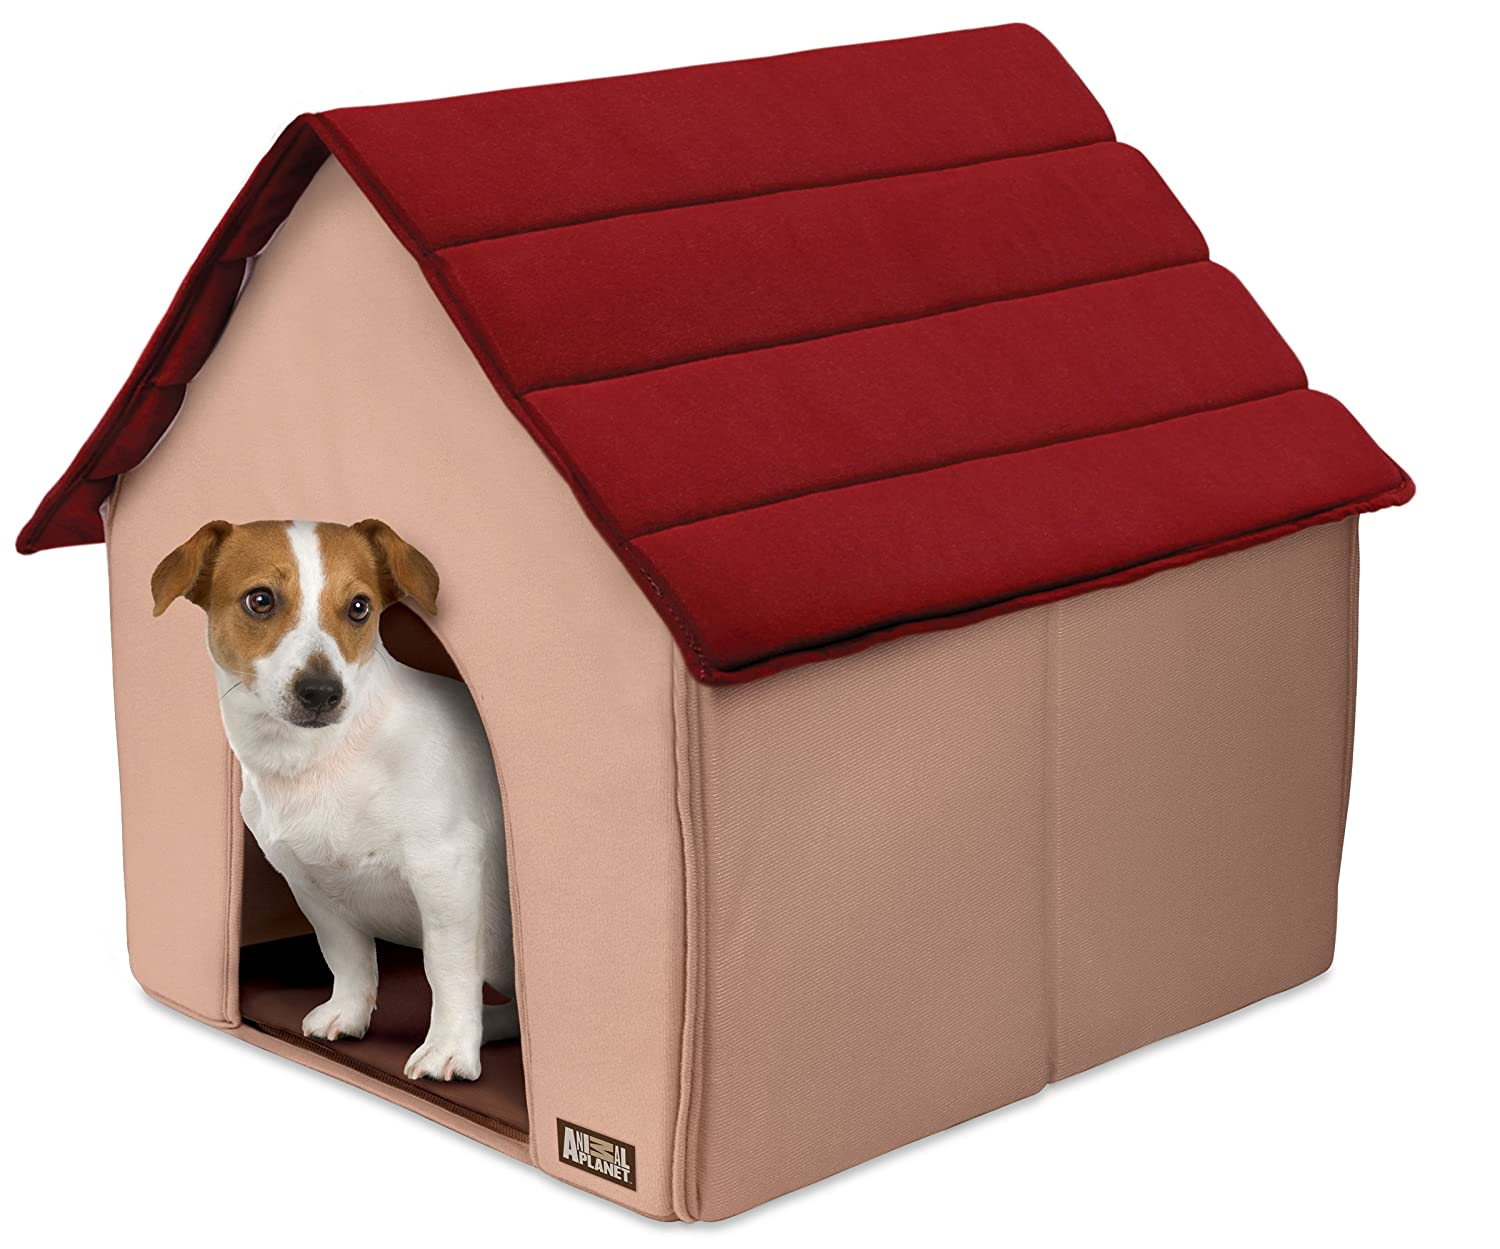 Indoor dog houses - Amazon Com Animal Planet Fold Go Portable Pet House Red Dog Houses Pet Supplies